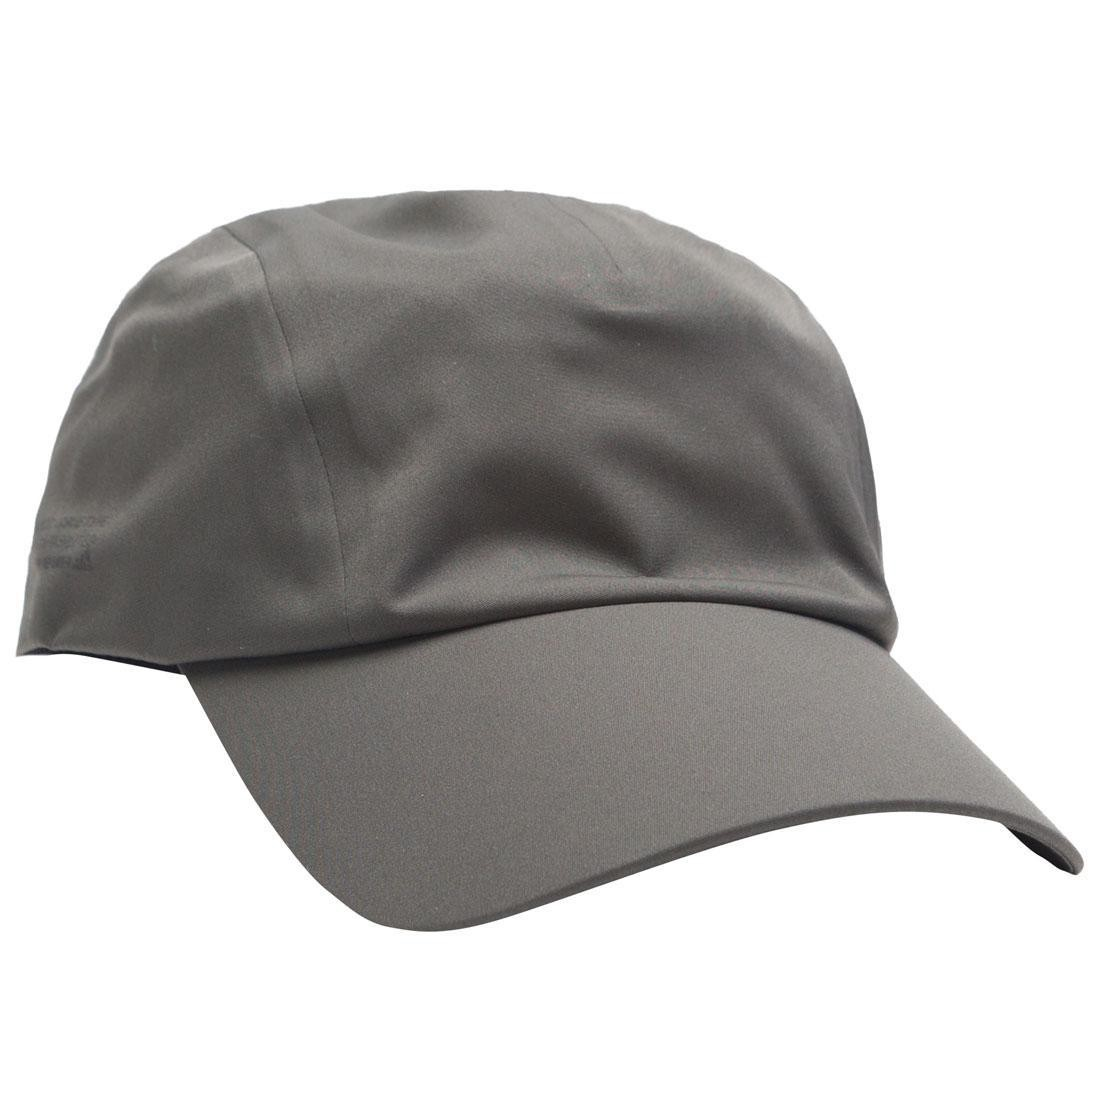 Adidas x Undefeated Running Hat (gray / cinder / utility black)